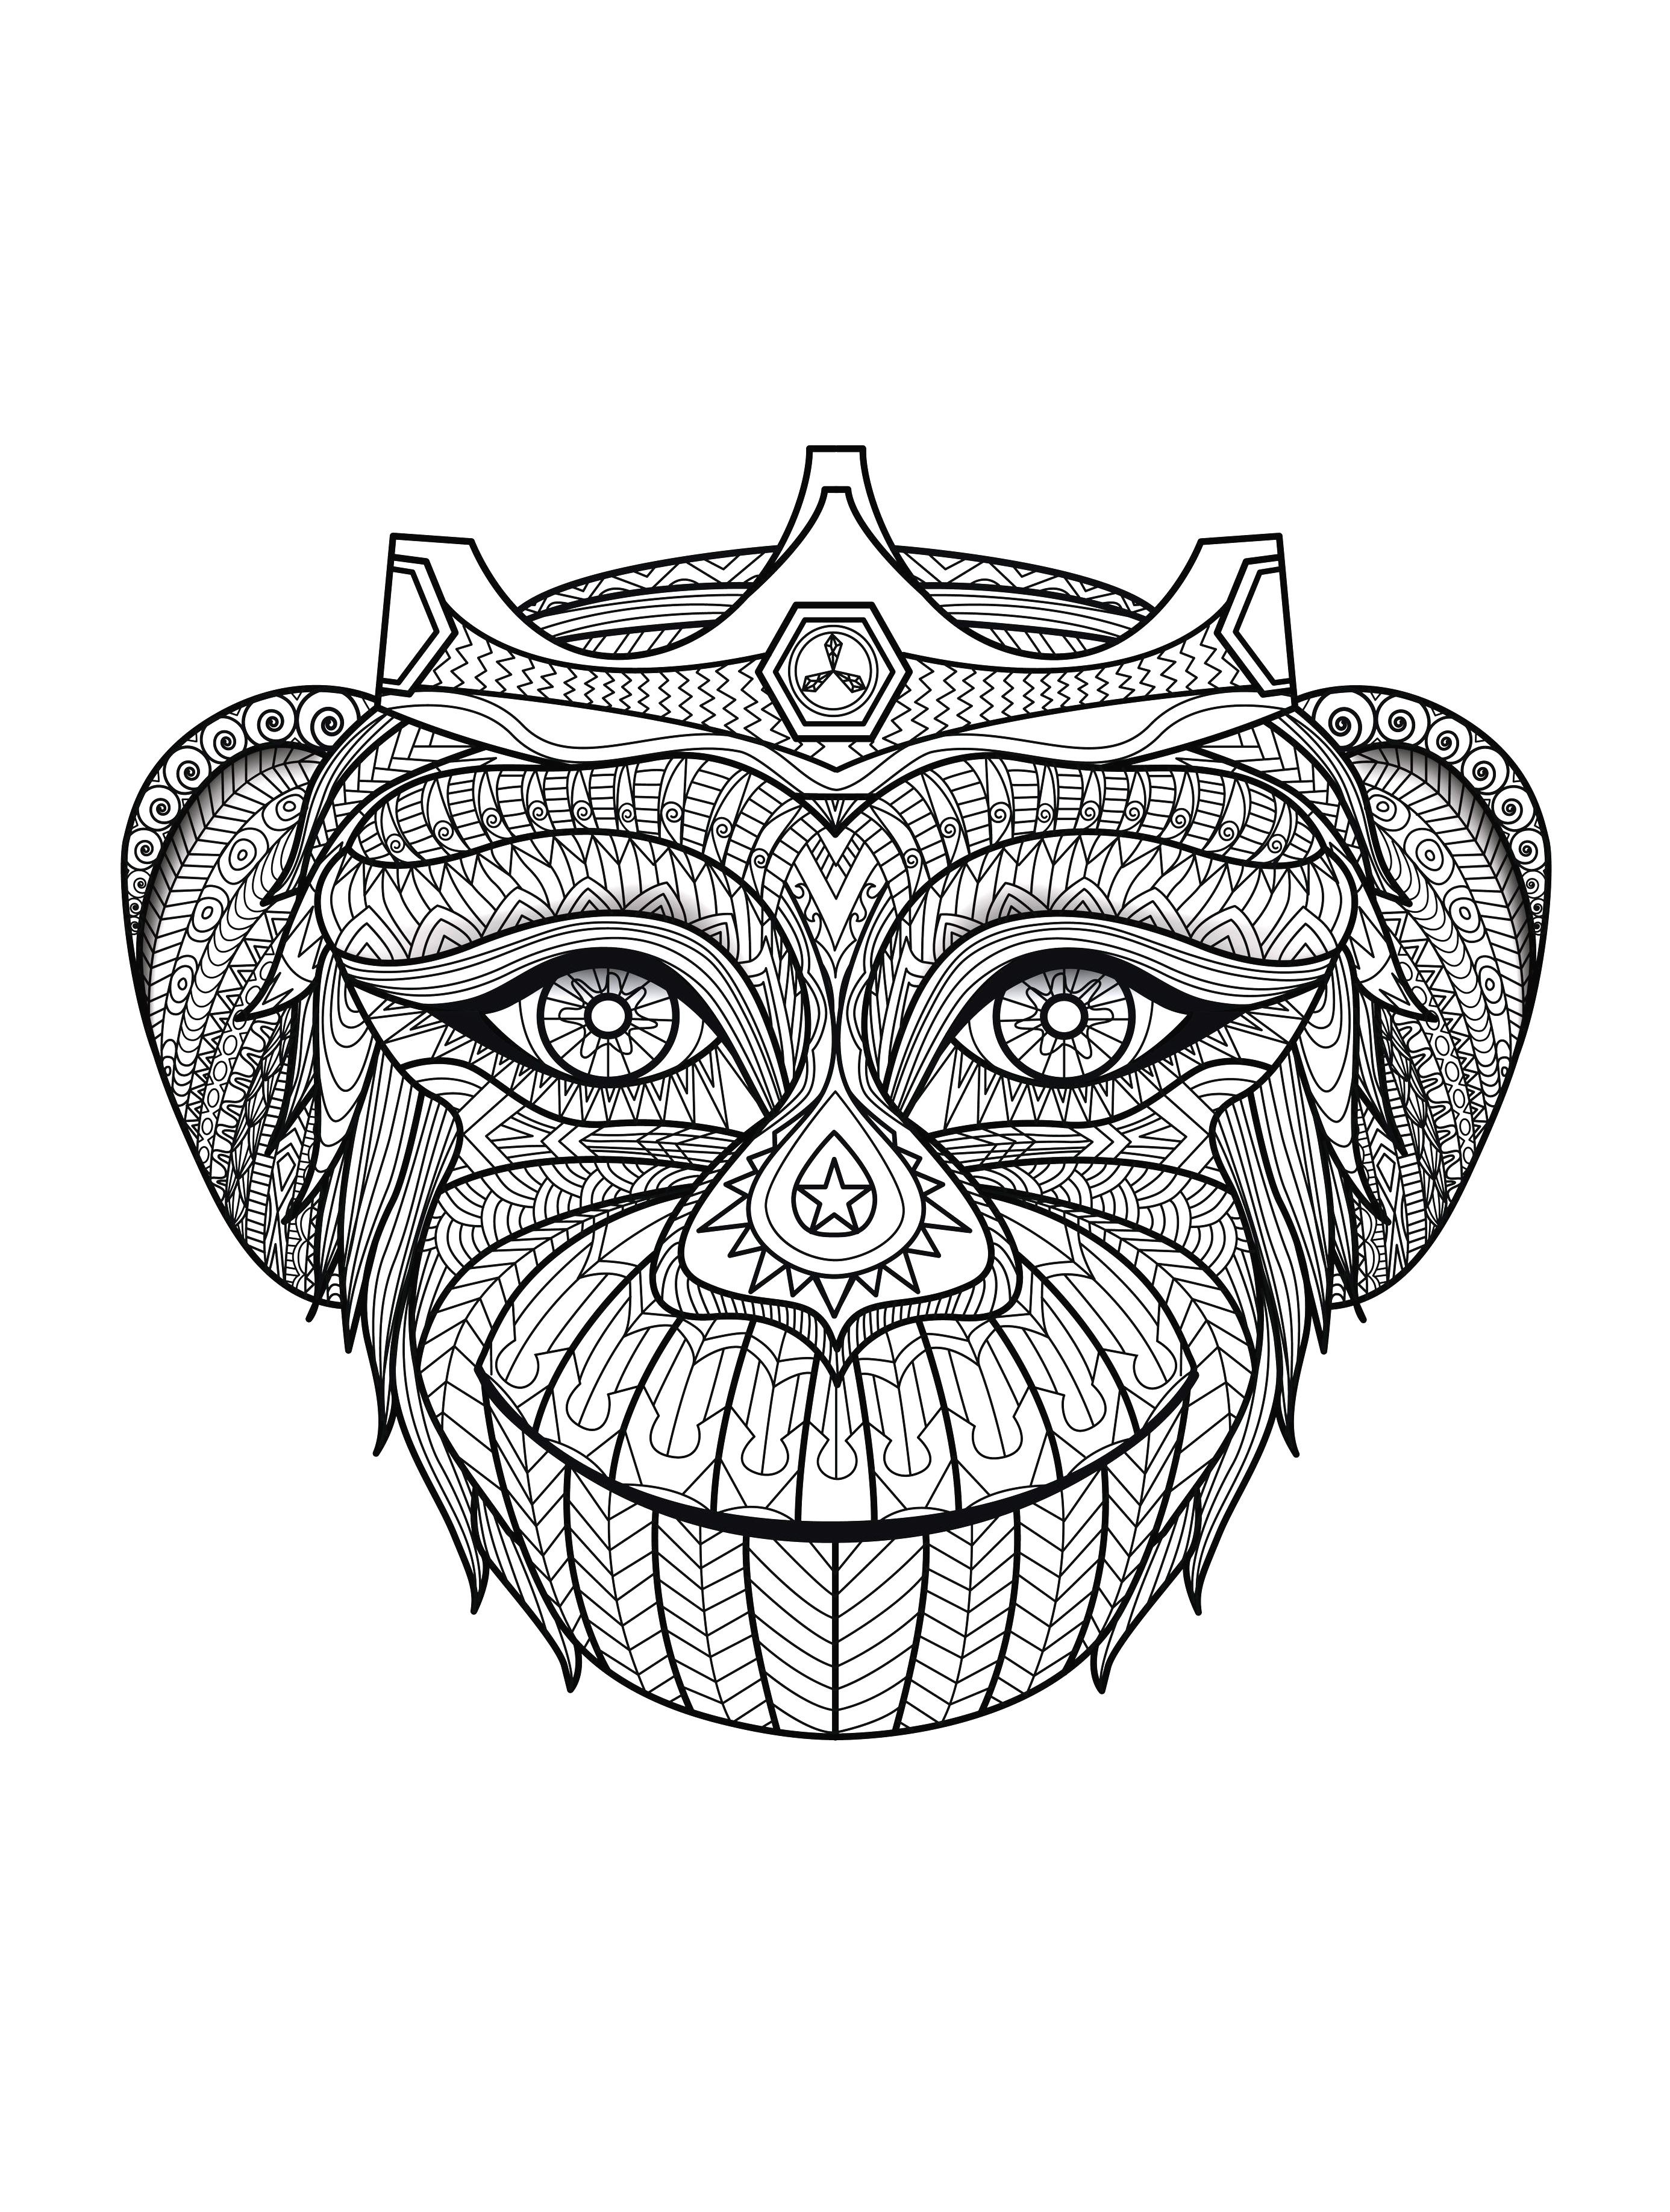 Africa monkey head africa adult coloring pages page 2